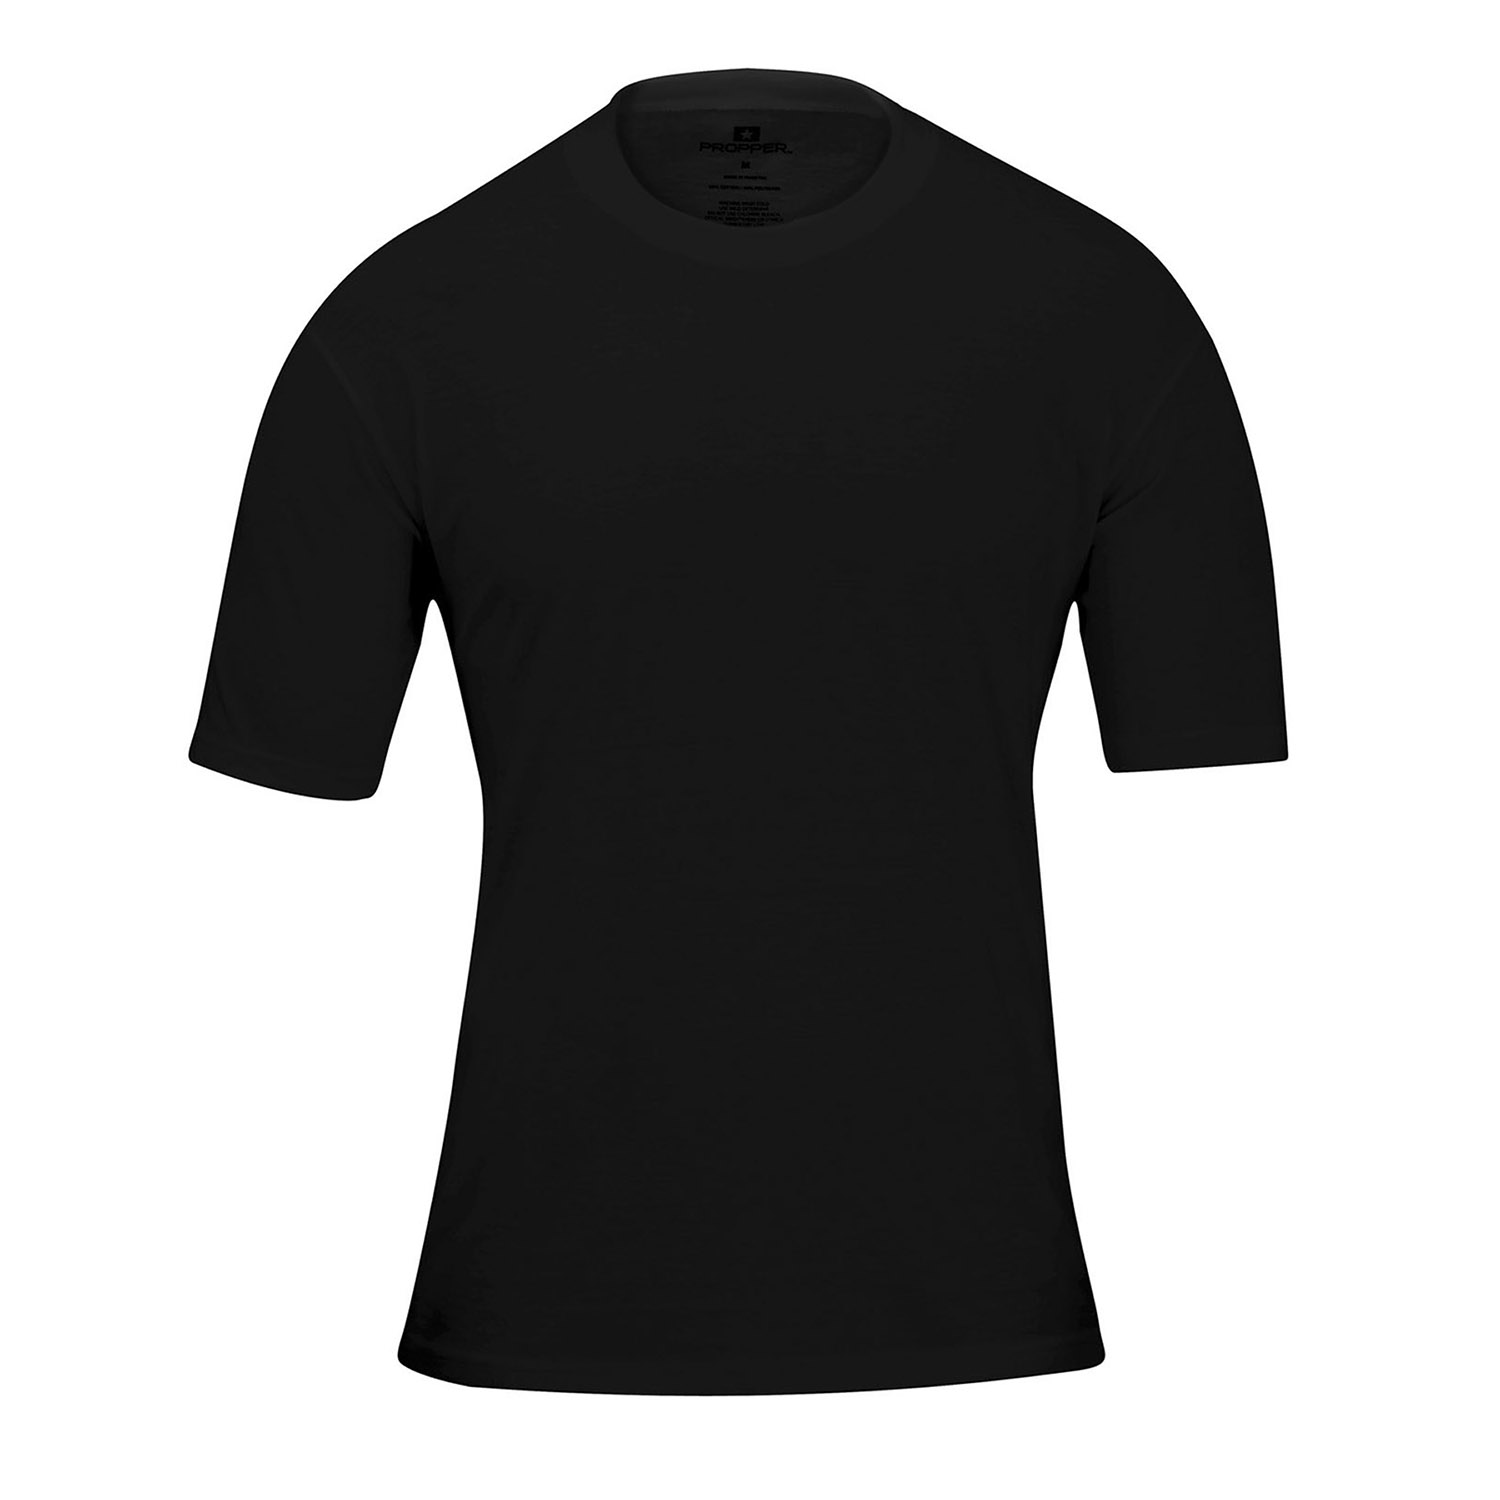 Propper T Shirts (3 Pack)